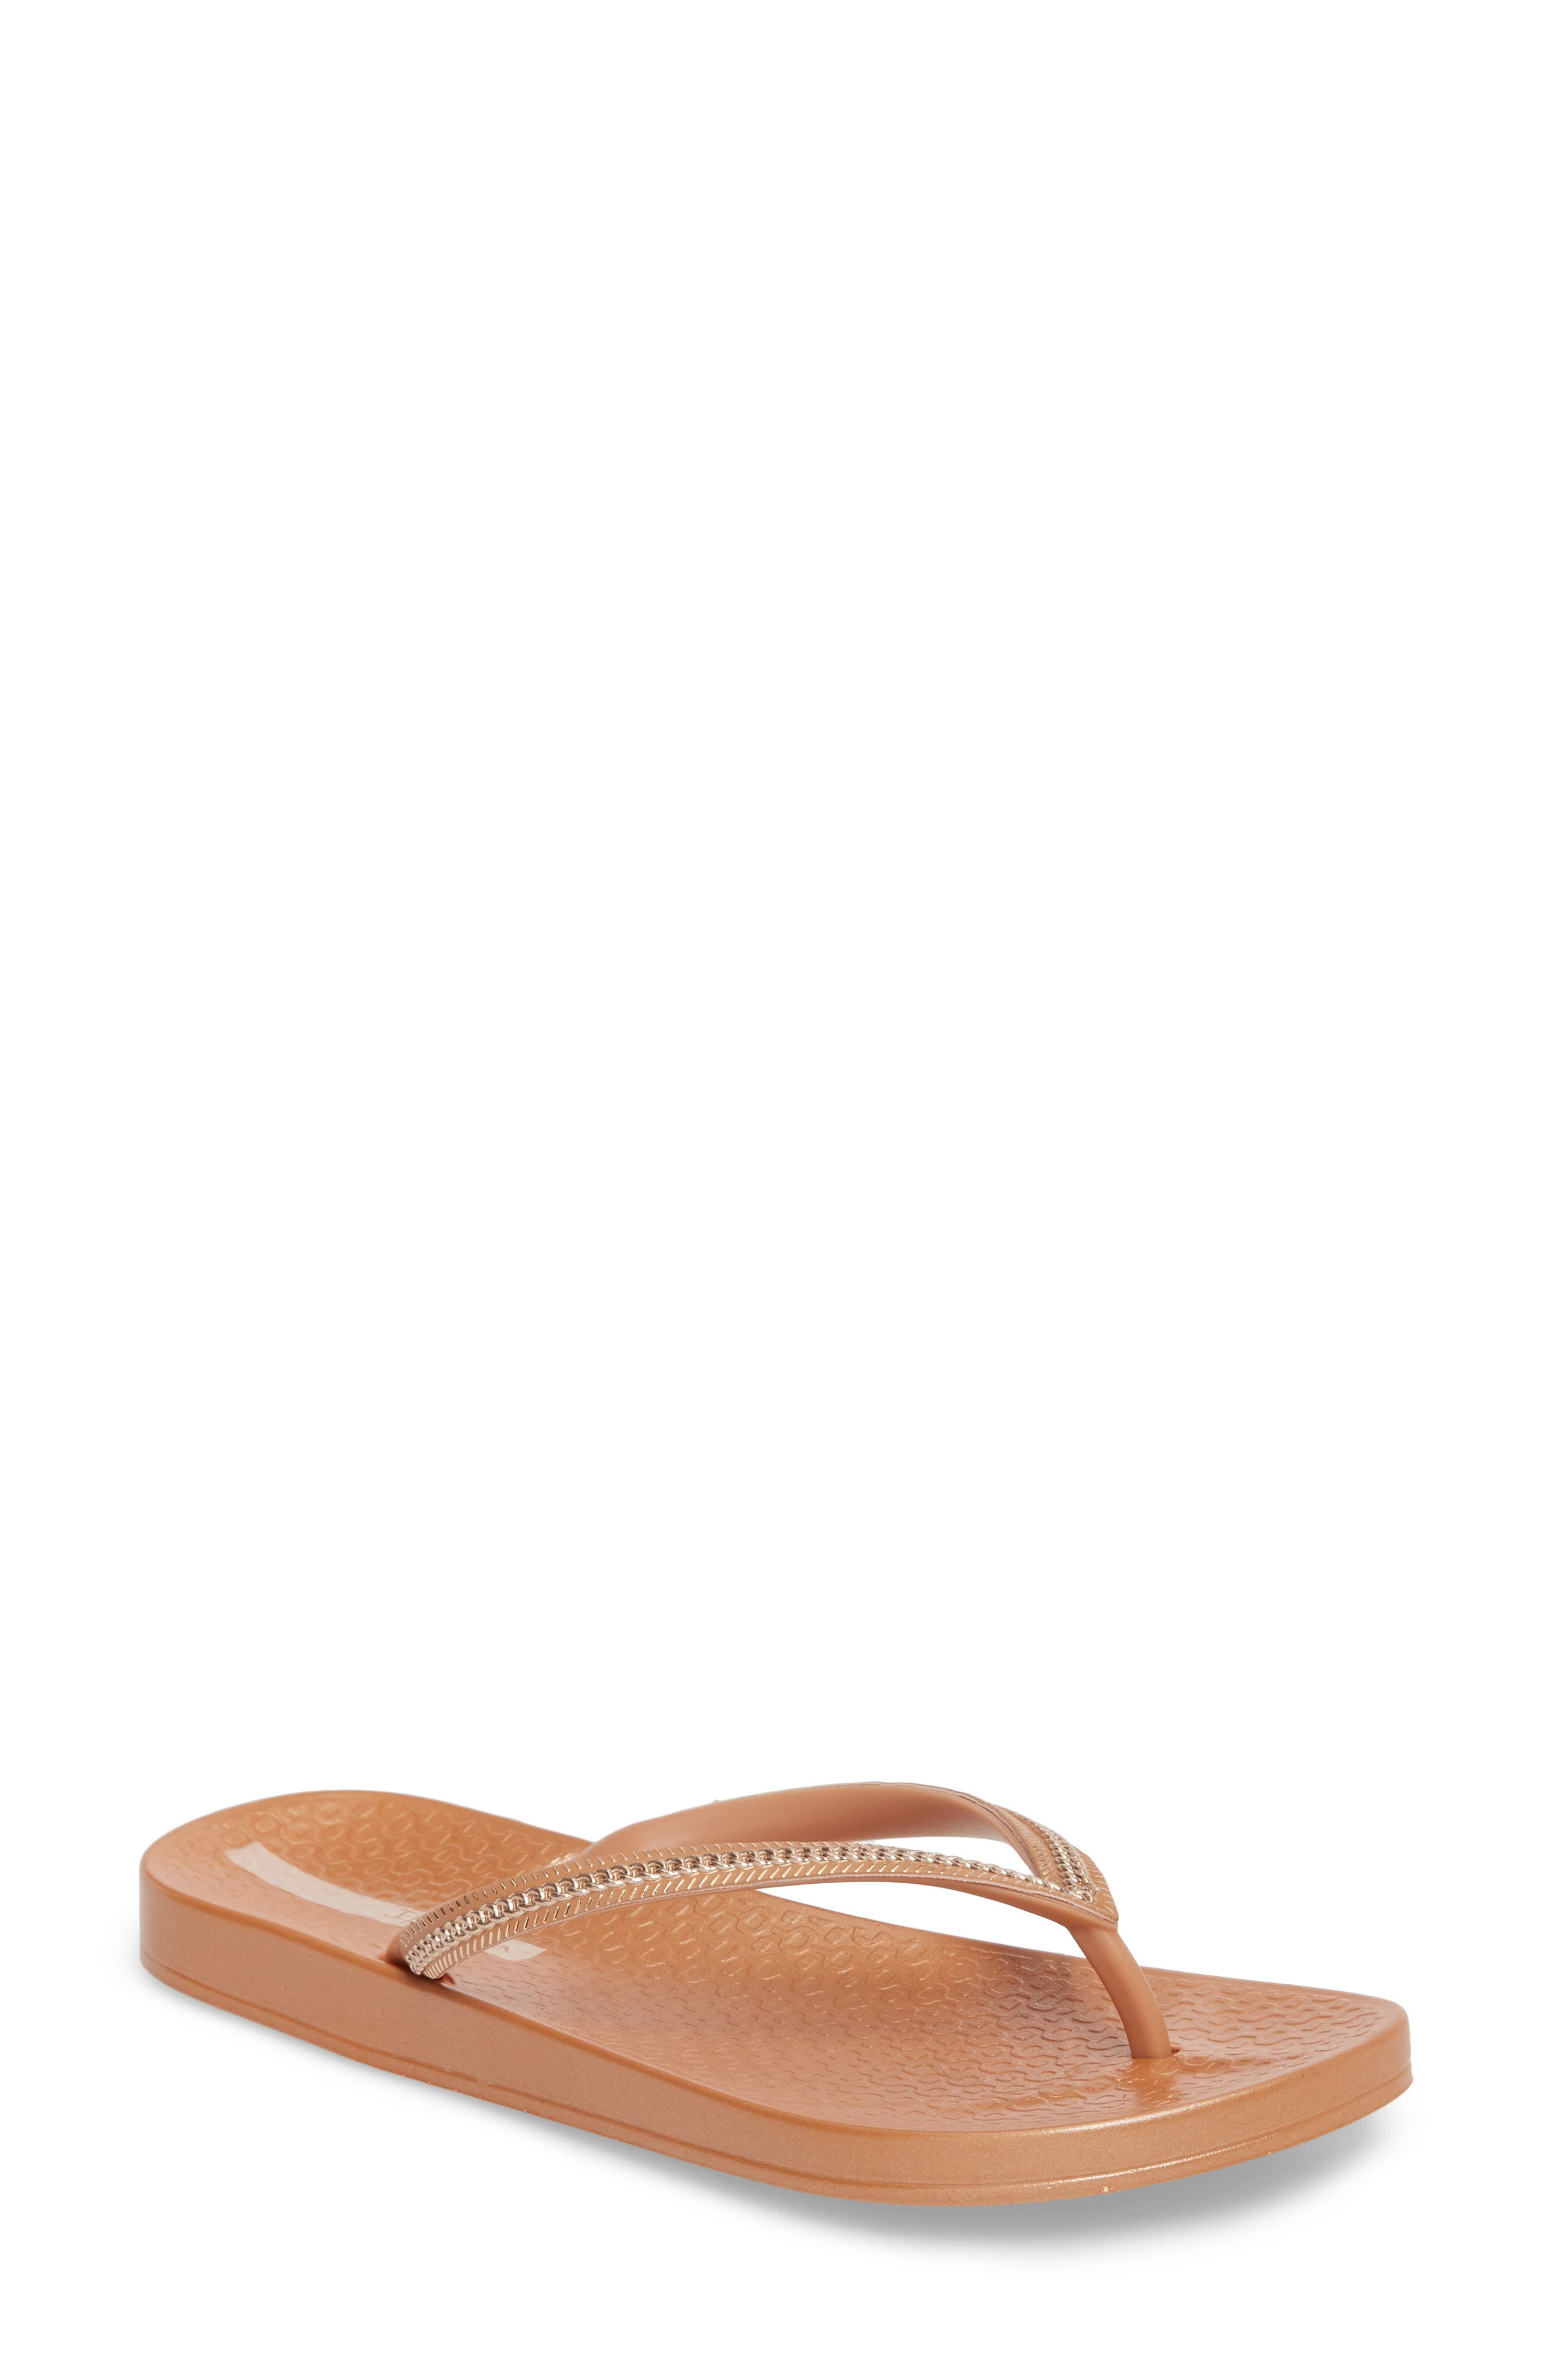 IPANEMA Ana Flip Flop, Main, color, 241